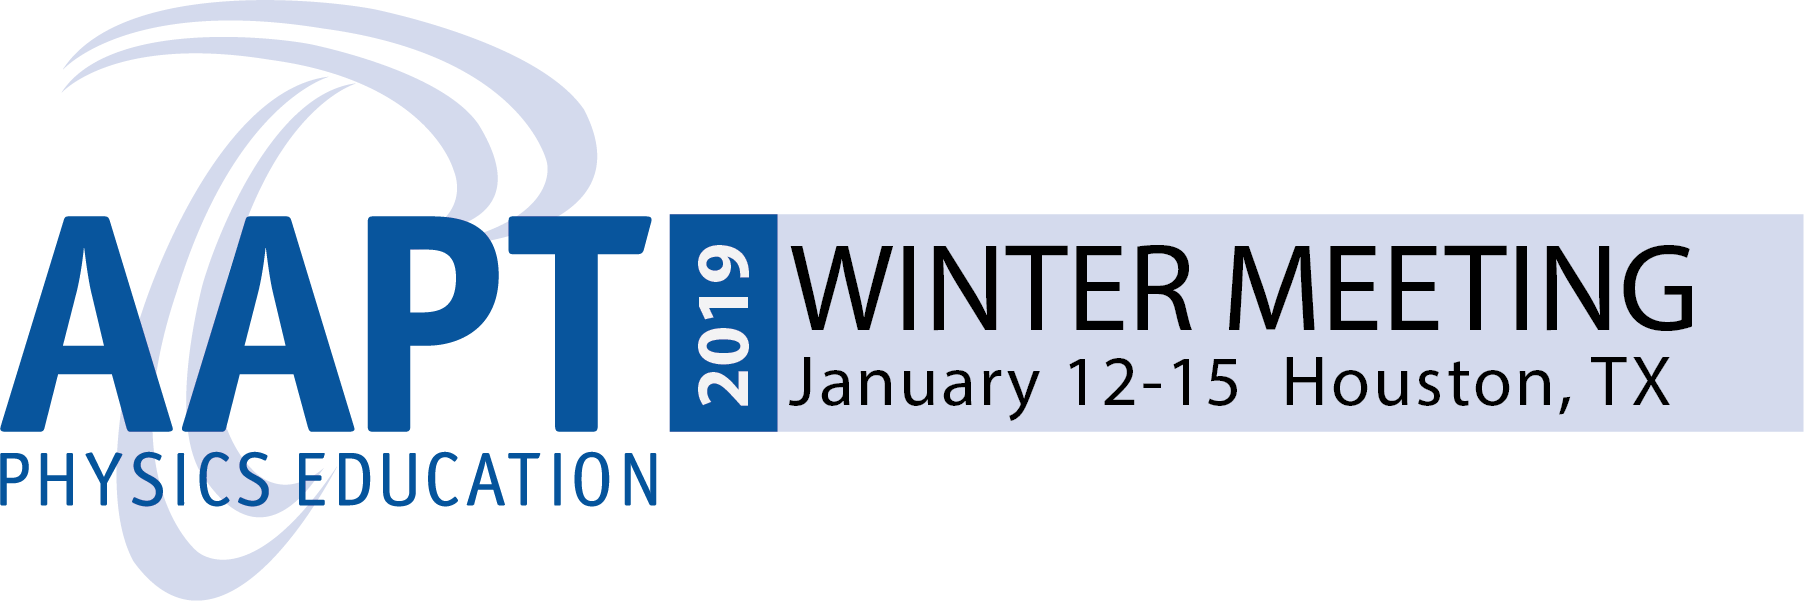 AAPT Winter Meeting 2019 in Houston 865d438892a0